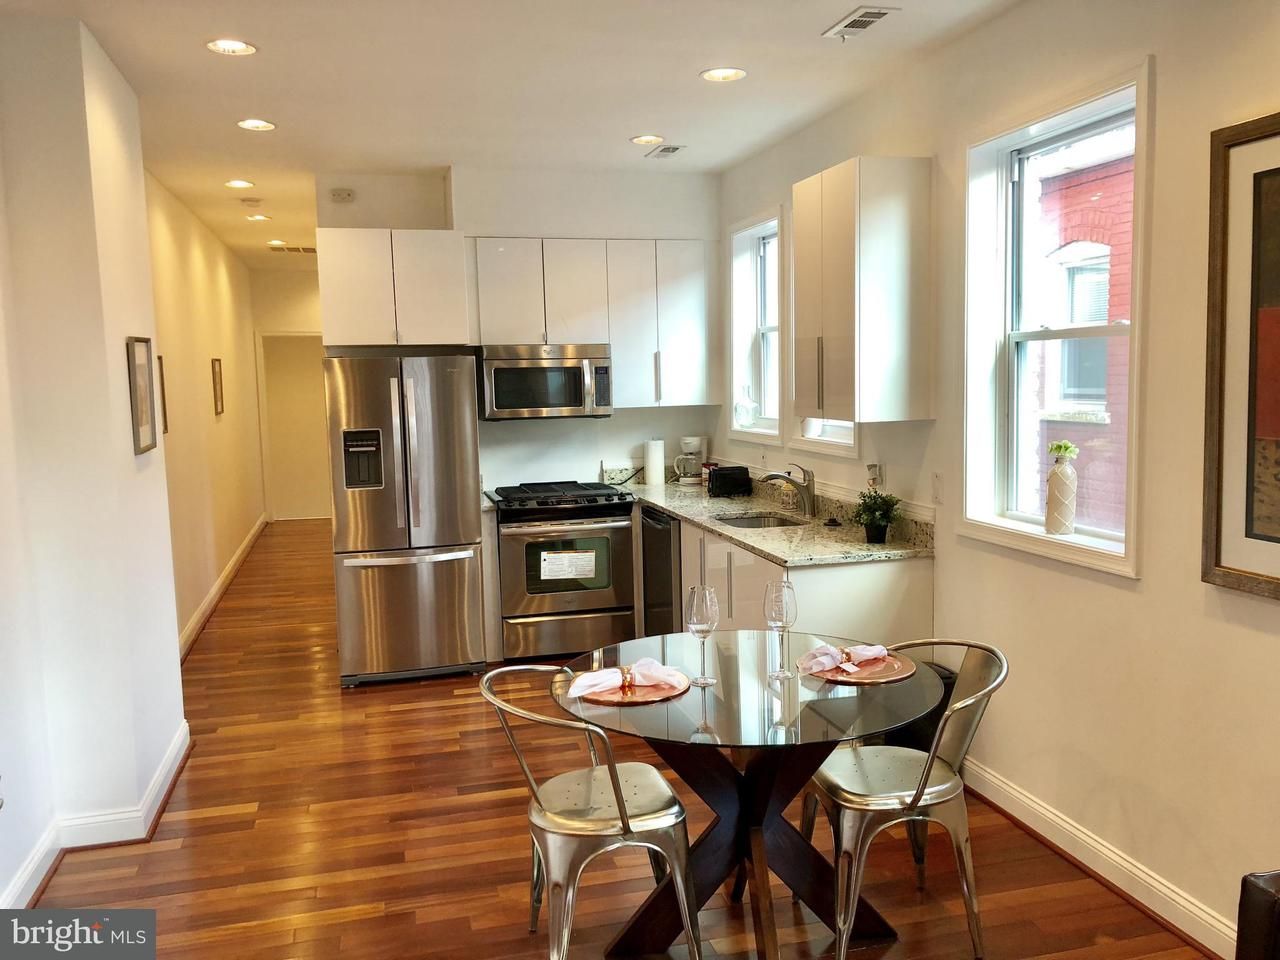 Condominium for Sale at 18 Bates St Nw #2 18 Bates St Nw #2 Washington, District Of Columbia 20001 United States